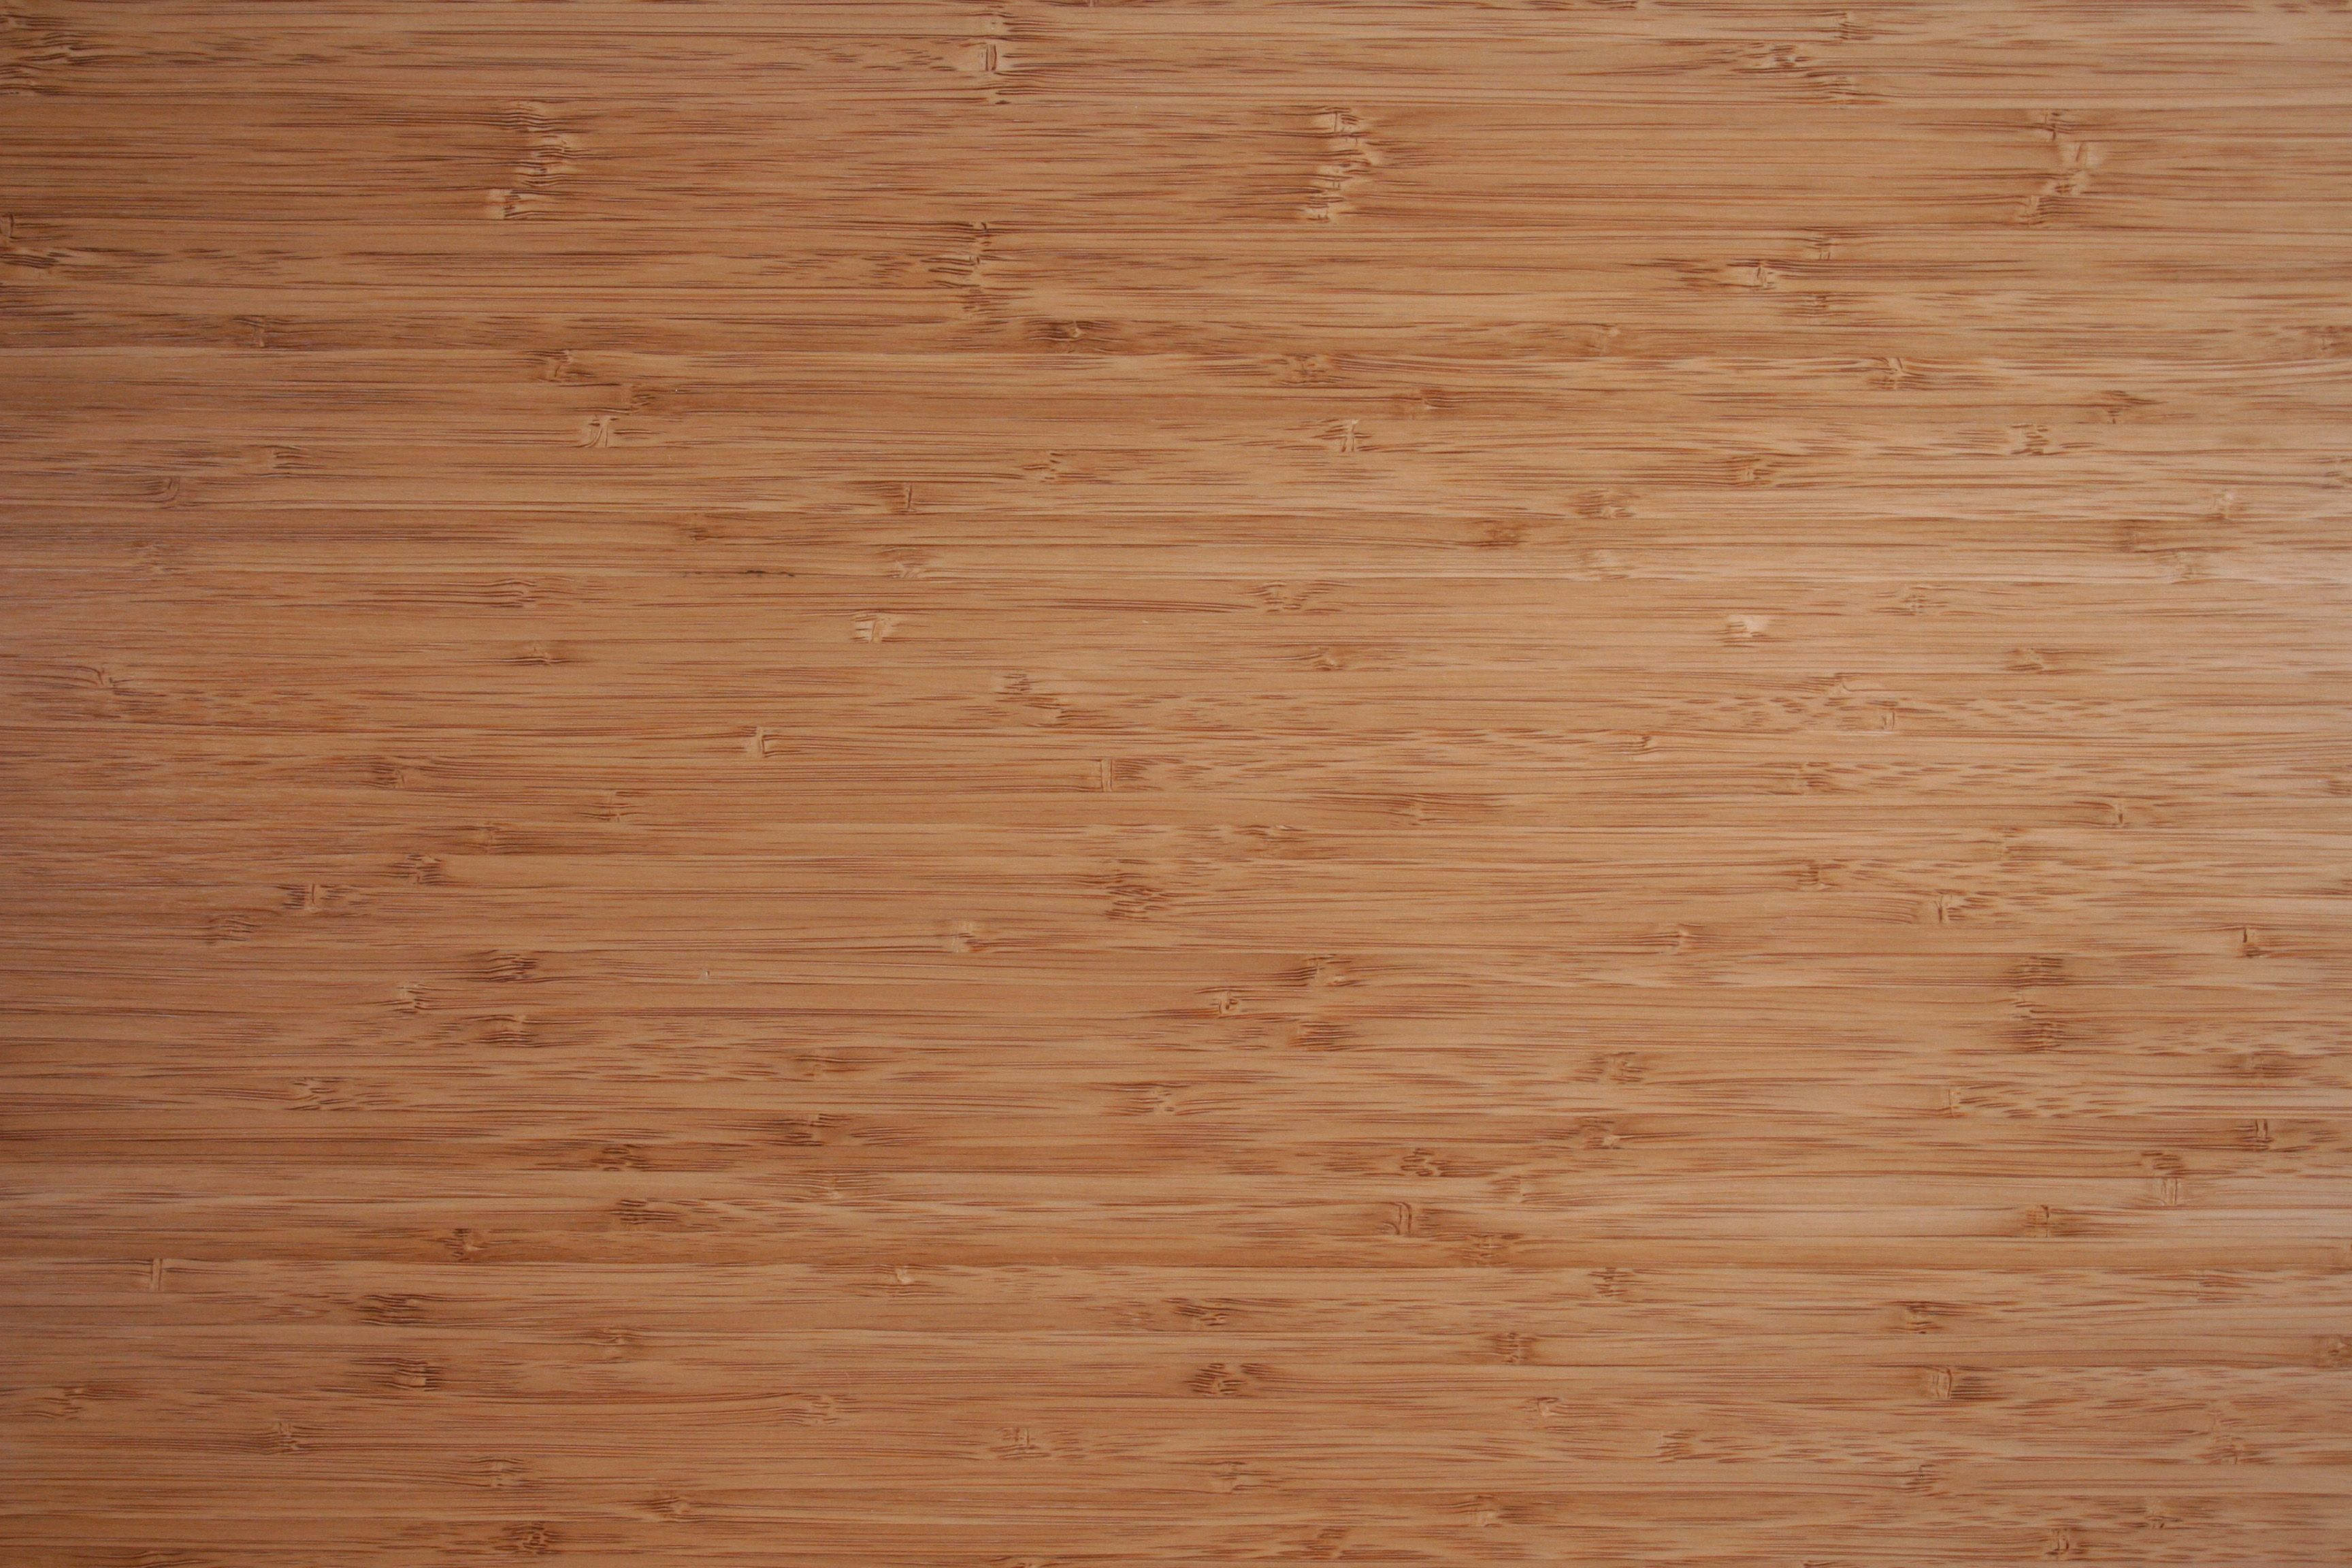 Bamboo Texture Wood Floor Natural Wood Pattern Texture Jpg 3456